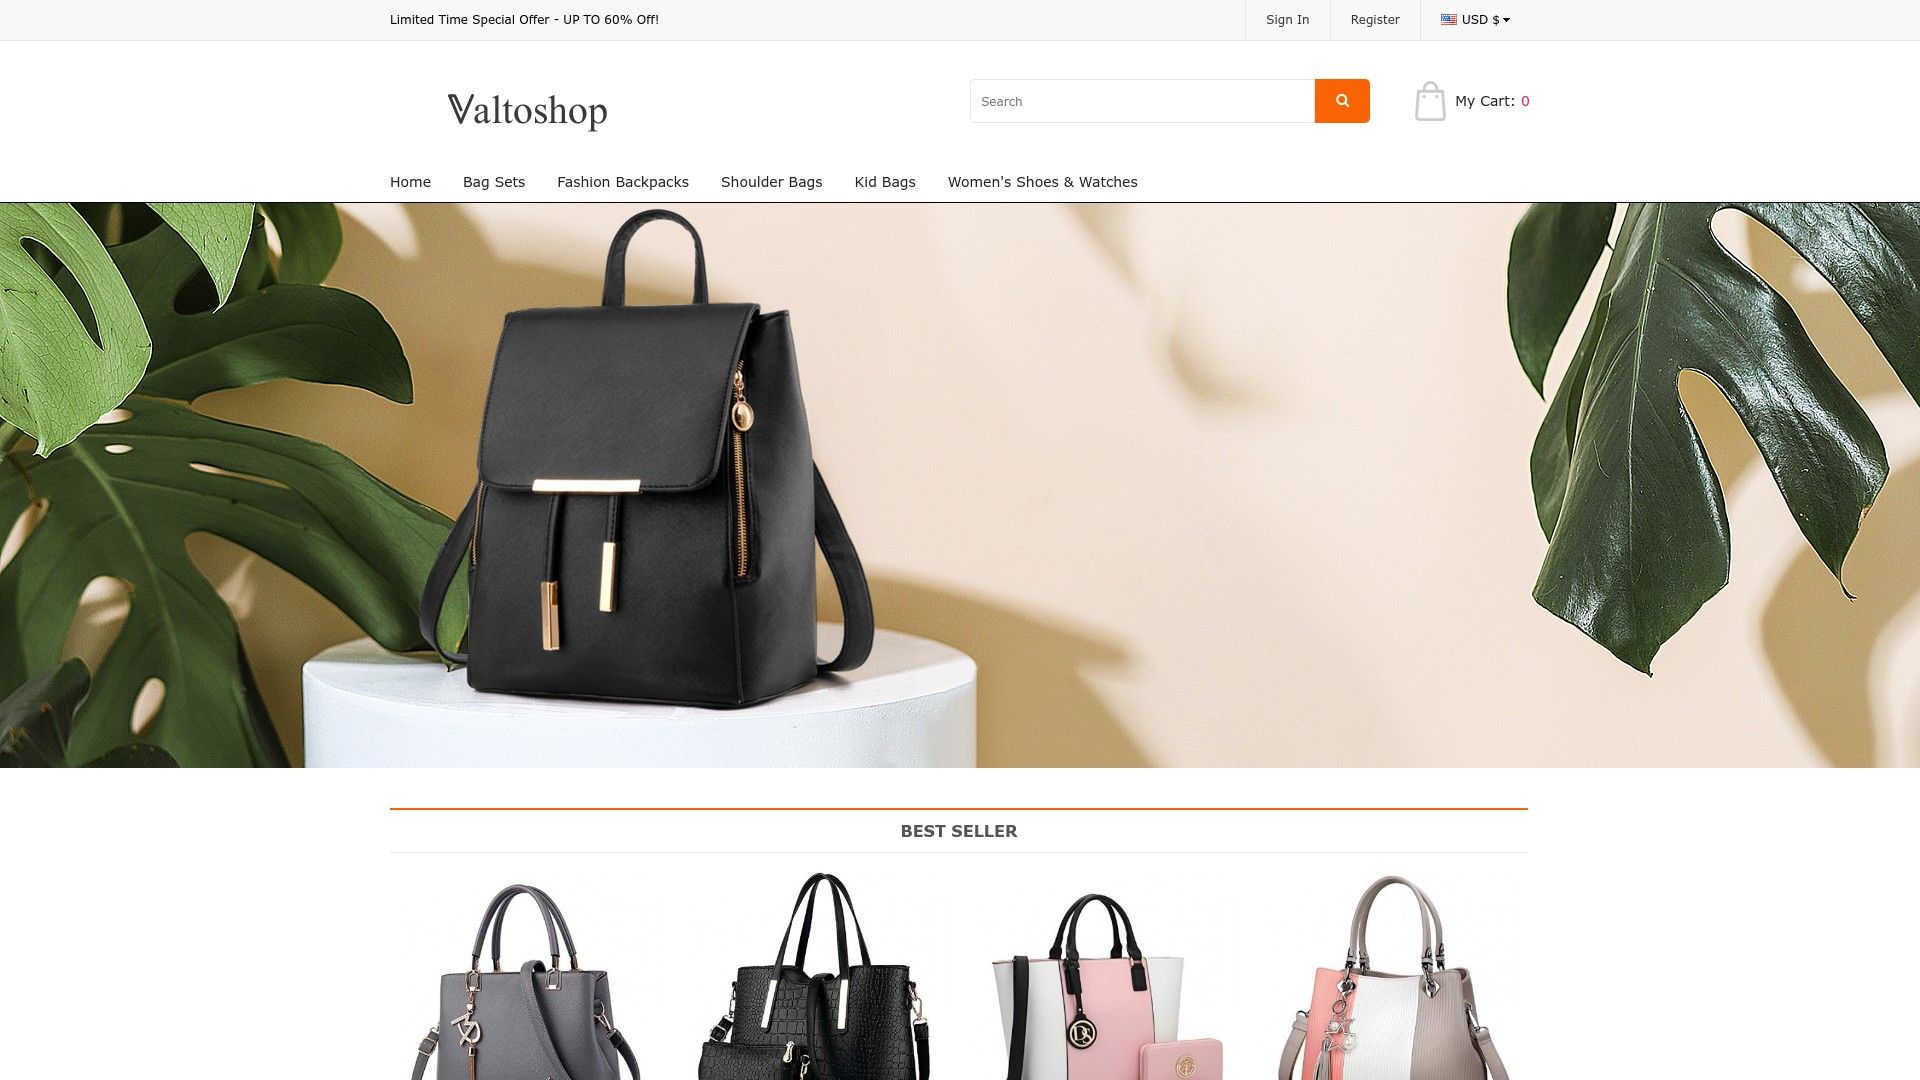 Valtoshop Scam  Review of the Online Apparel Store